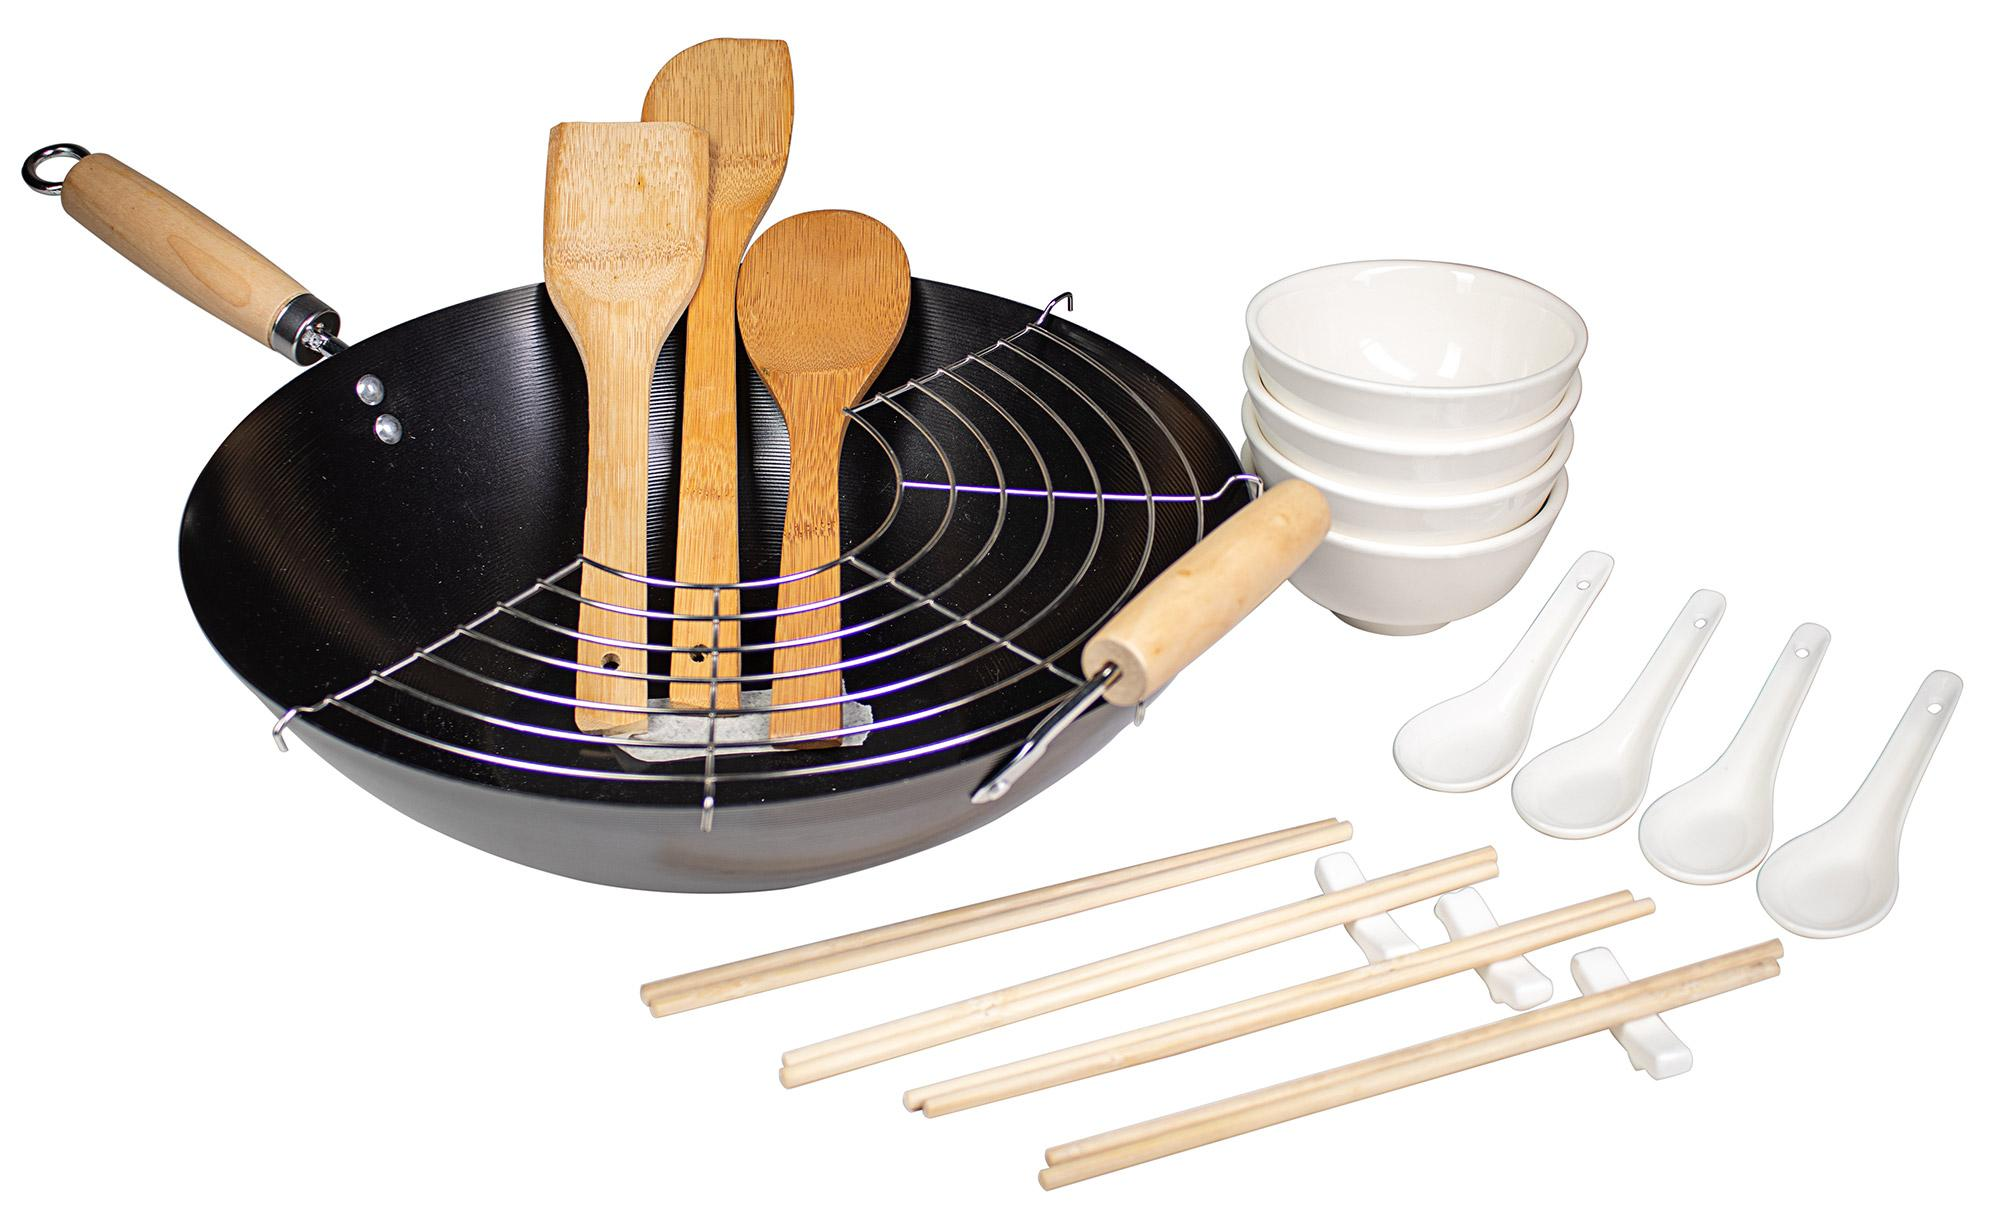 Image of Wok Set 21 Pezzi Carbon Steel per Cucina Giapponese Collection Nero